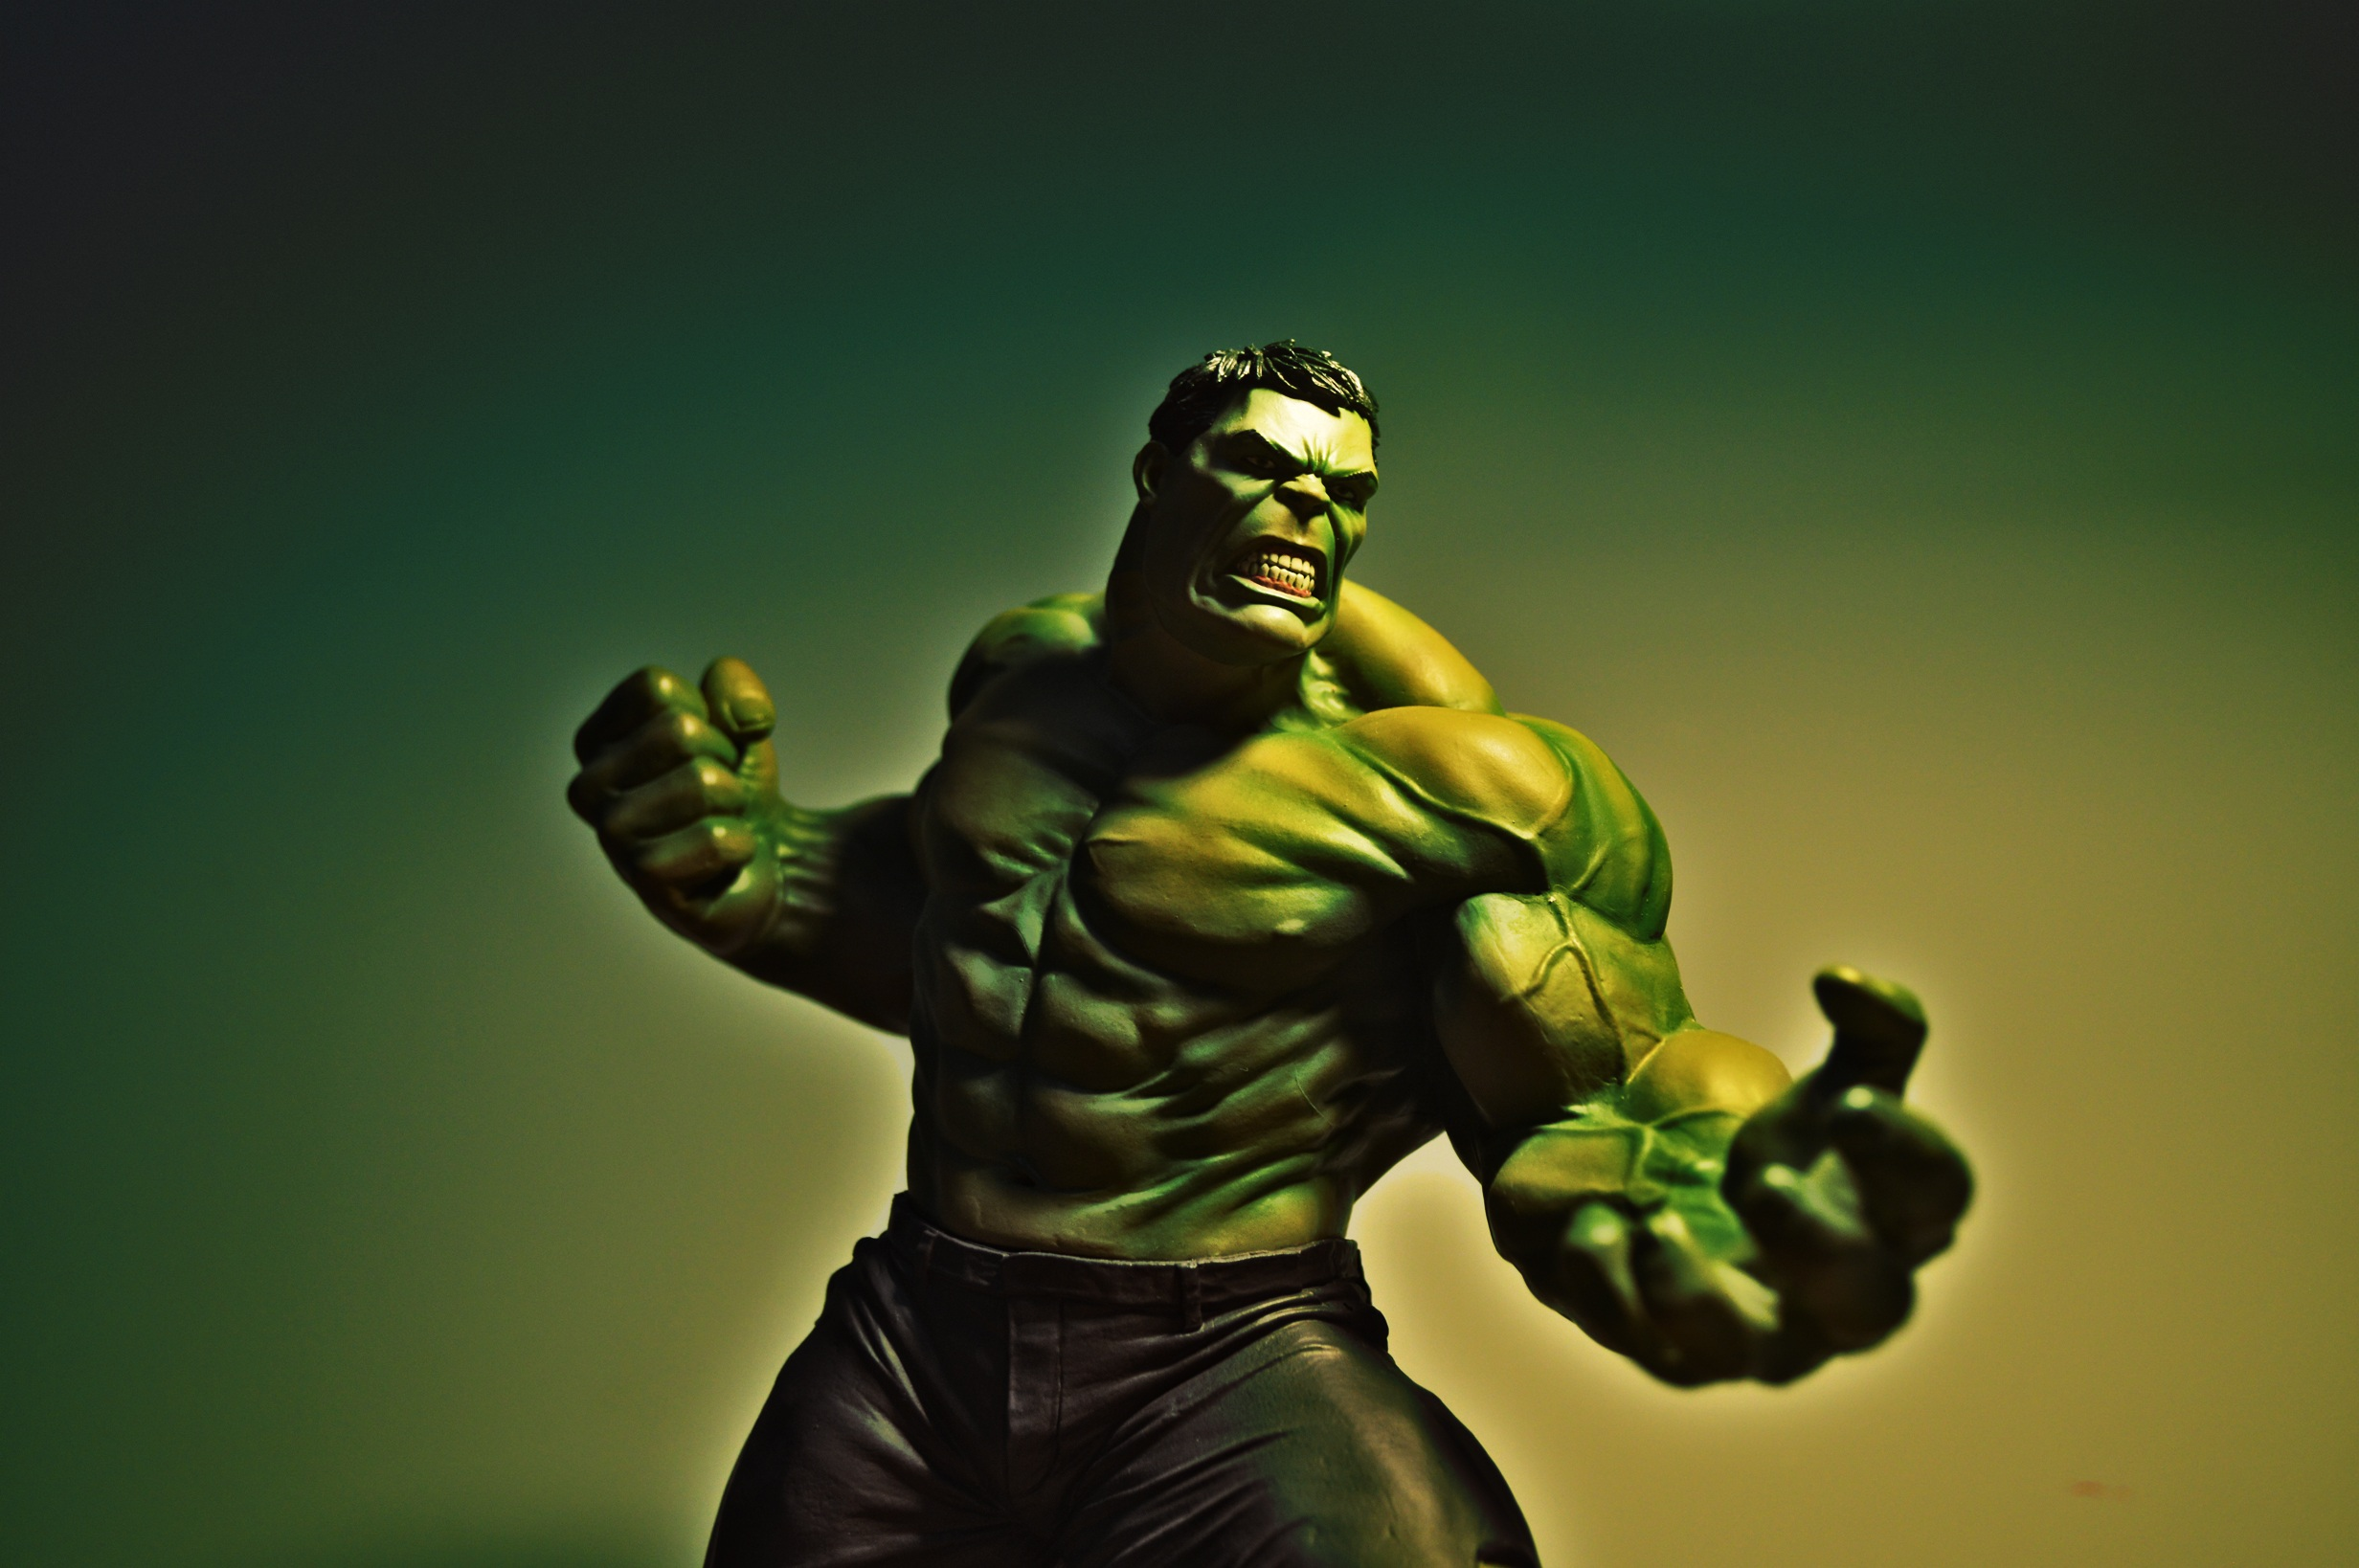 Hulk, Marvel, super-héros, Force, muscles - Fonds d'écran HD - Professor-falken.com